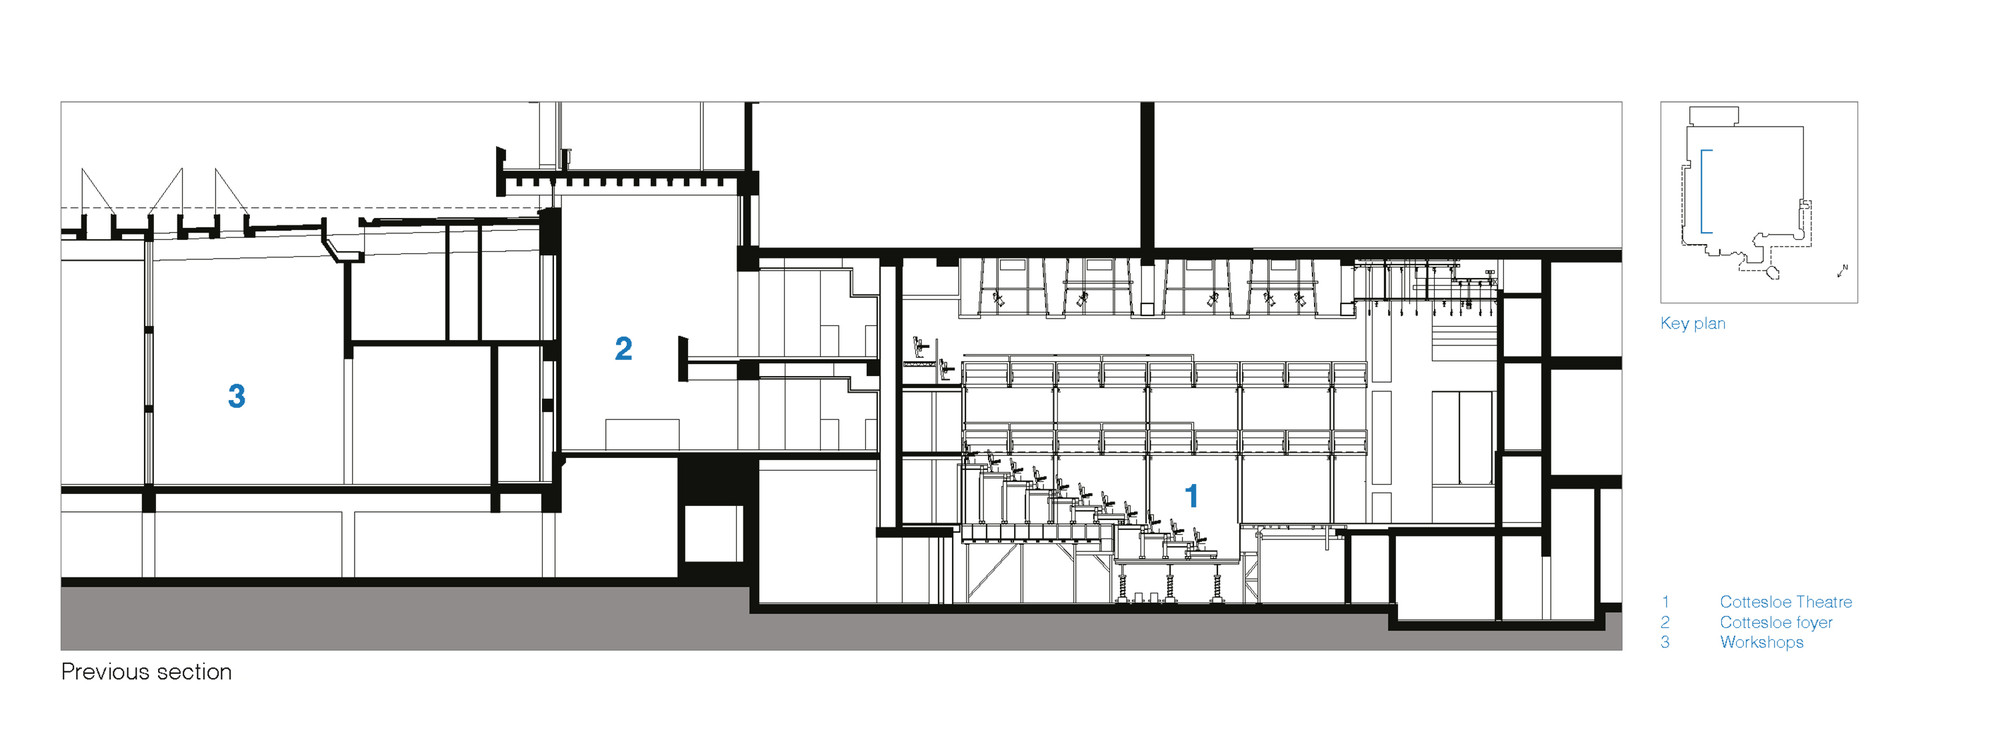 gallery of national theatre haworth tompkins 46 - theater